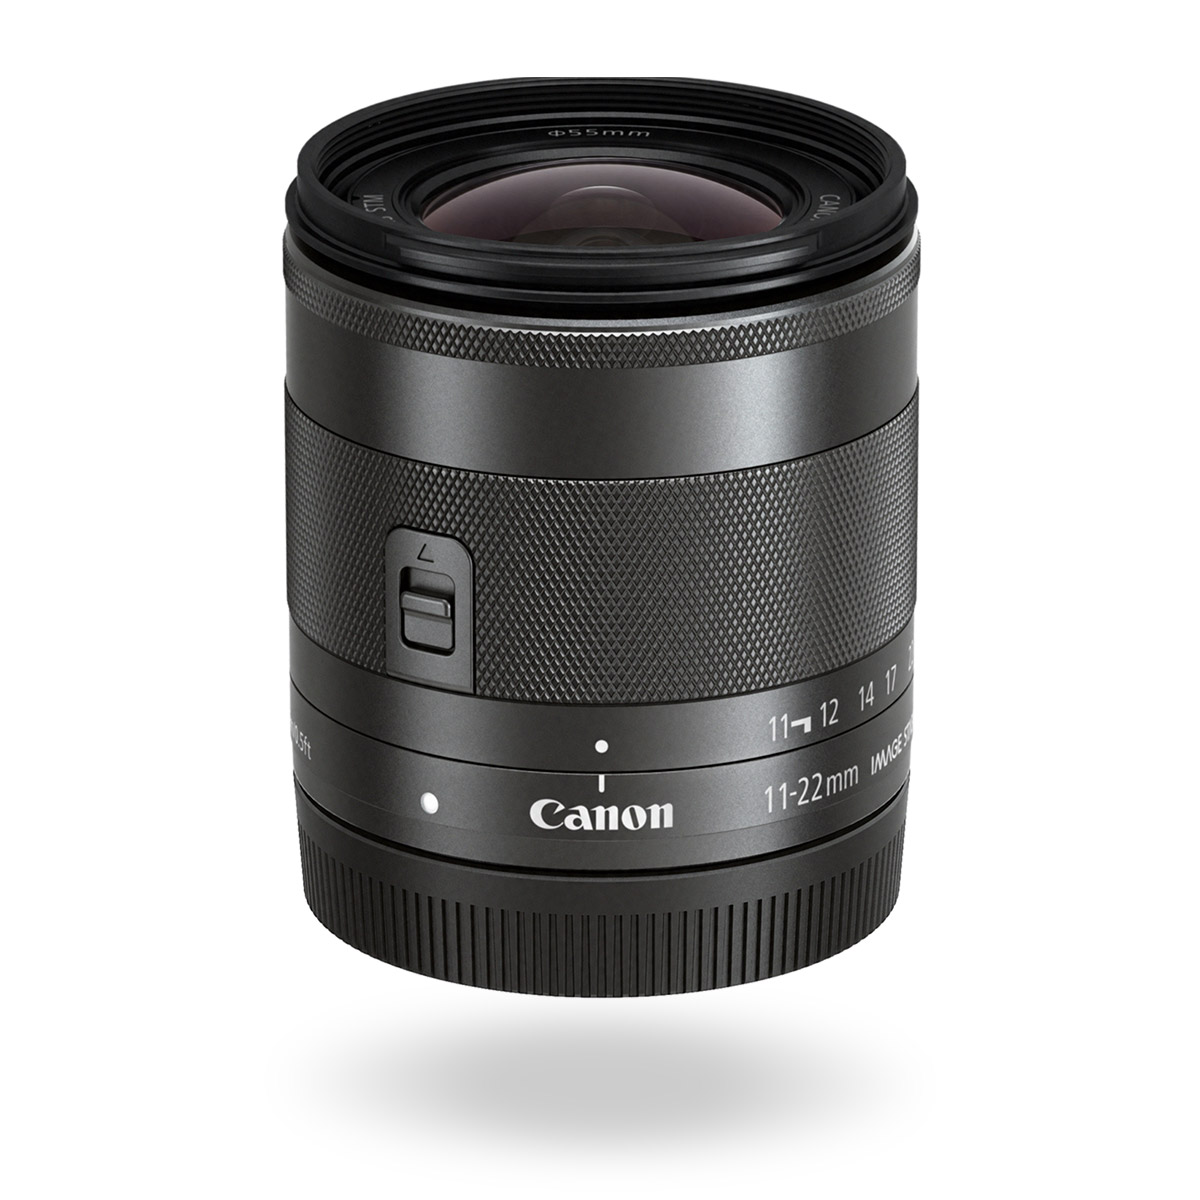 EF-M 11-22 f/4-5.6 IS STM Lens